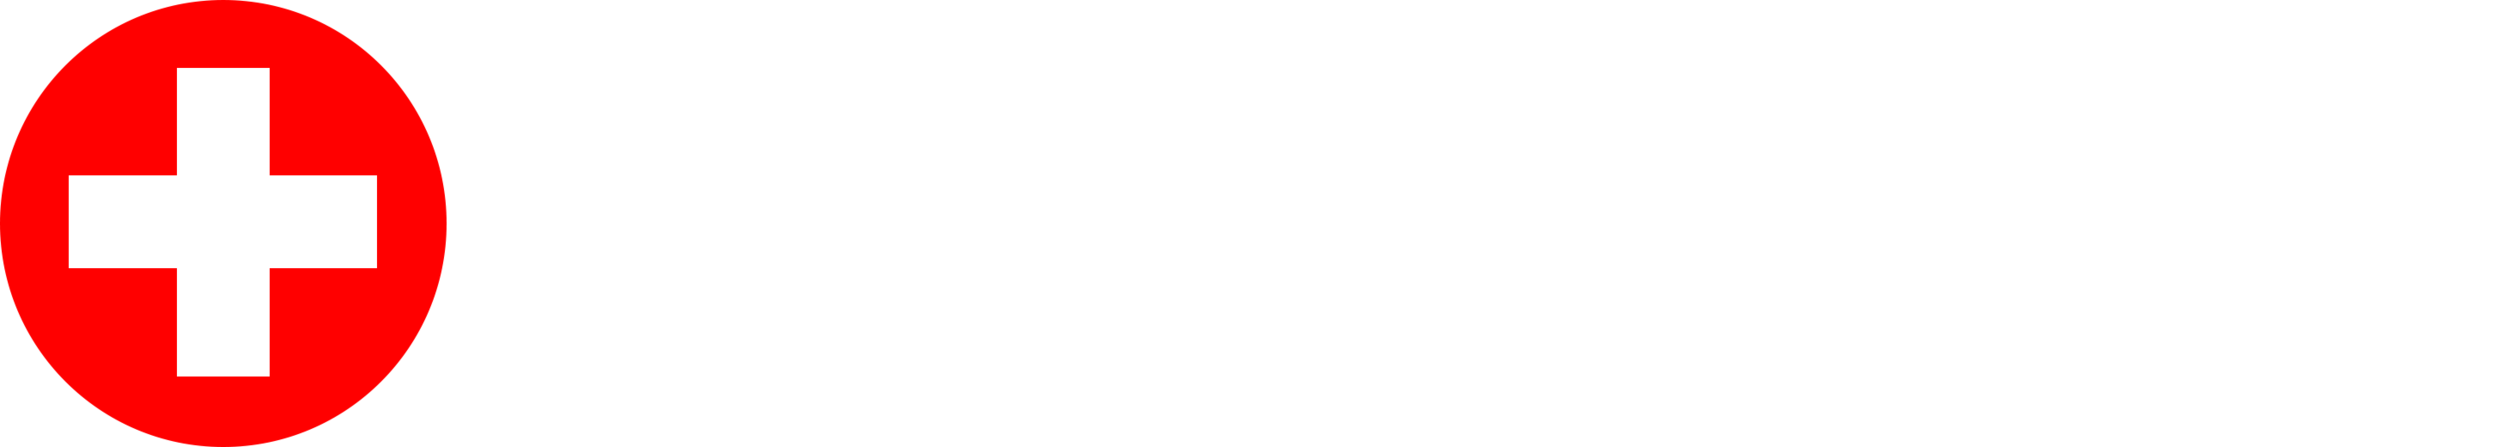 surge-doctor-logo-footer.png